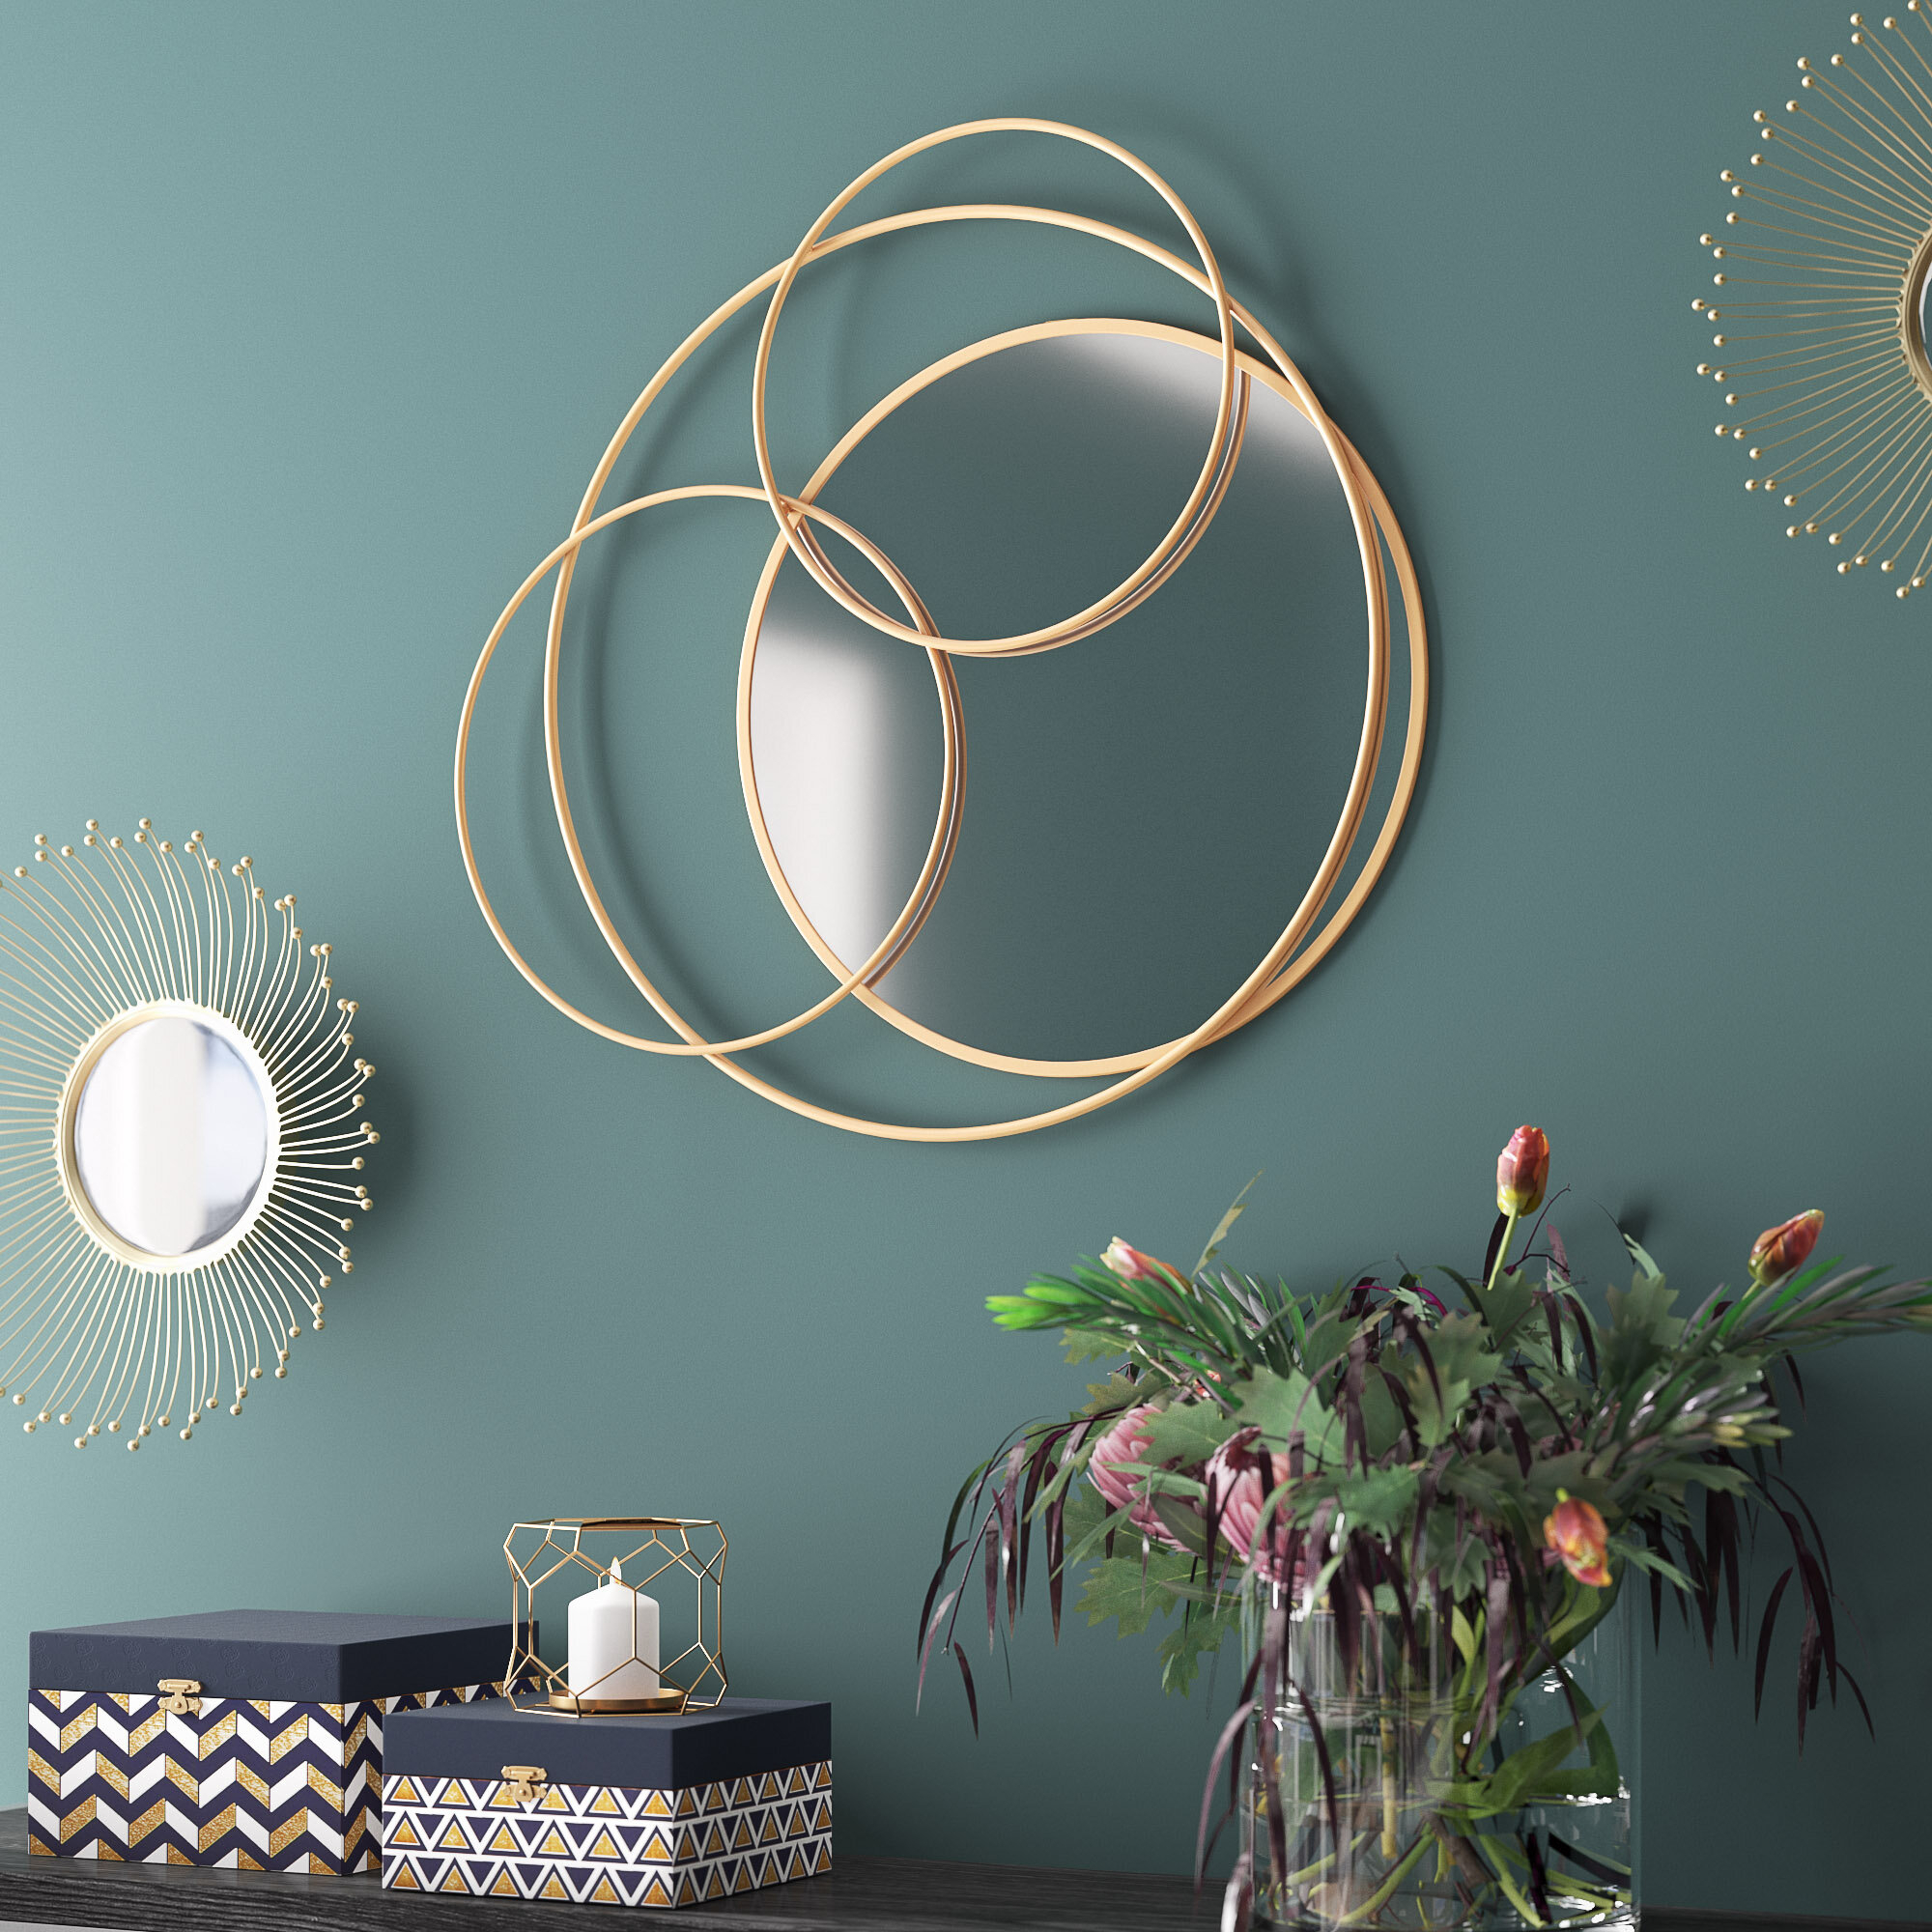 Khloe Layered Wall Mounted Mirror With Regard To Rings Wall Decor By Wrought Studio (Gallery 24 of 30)